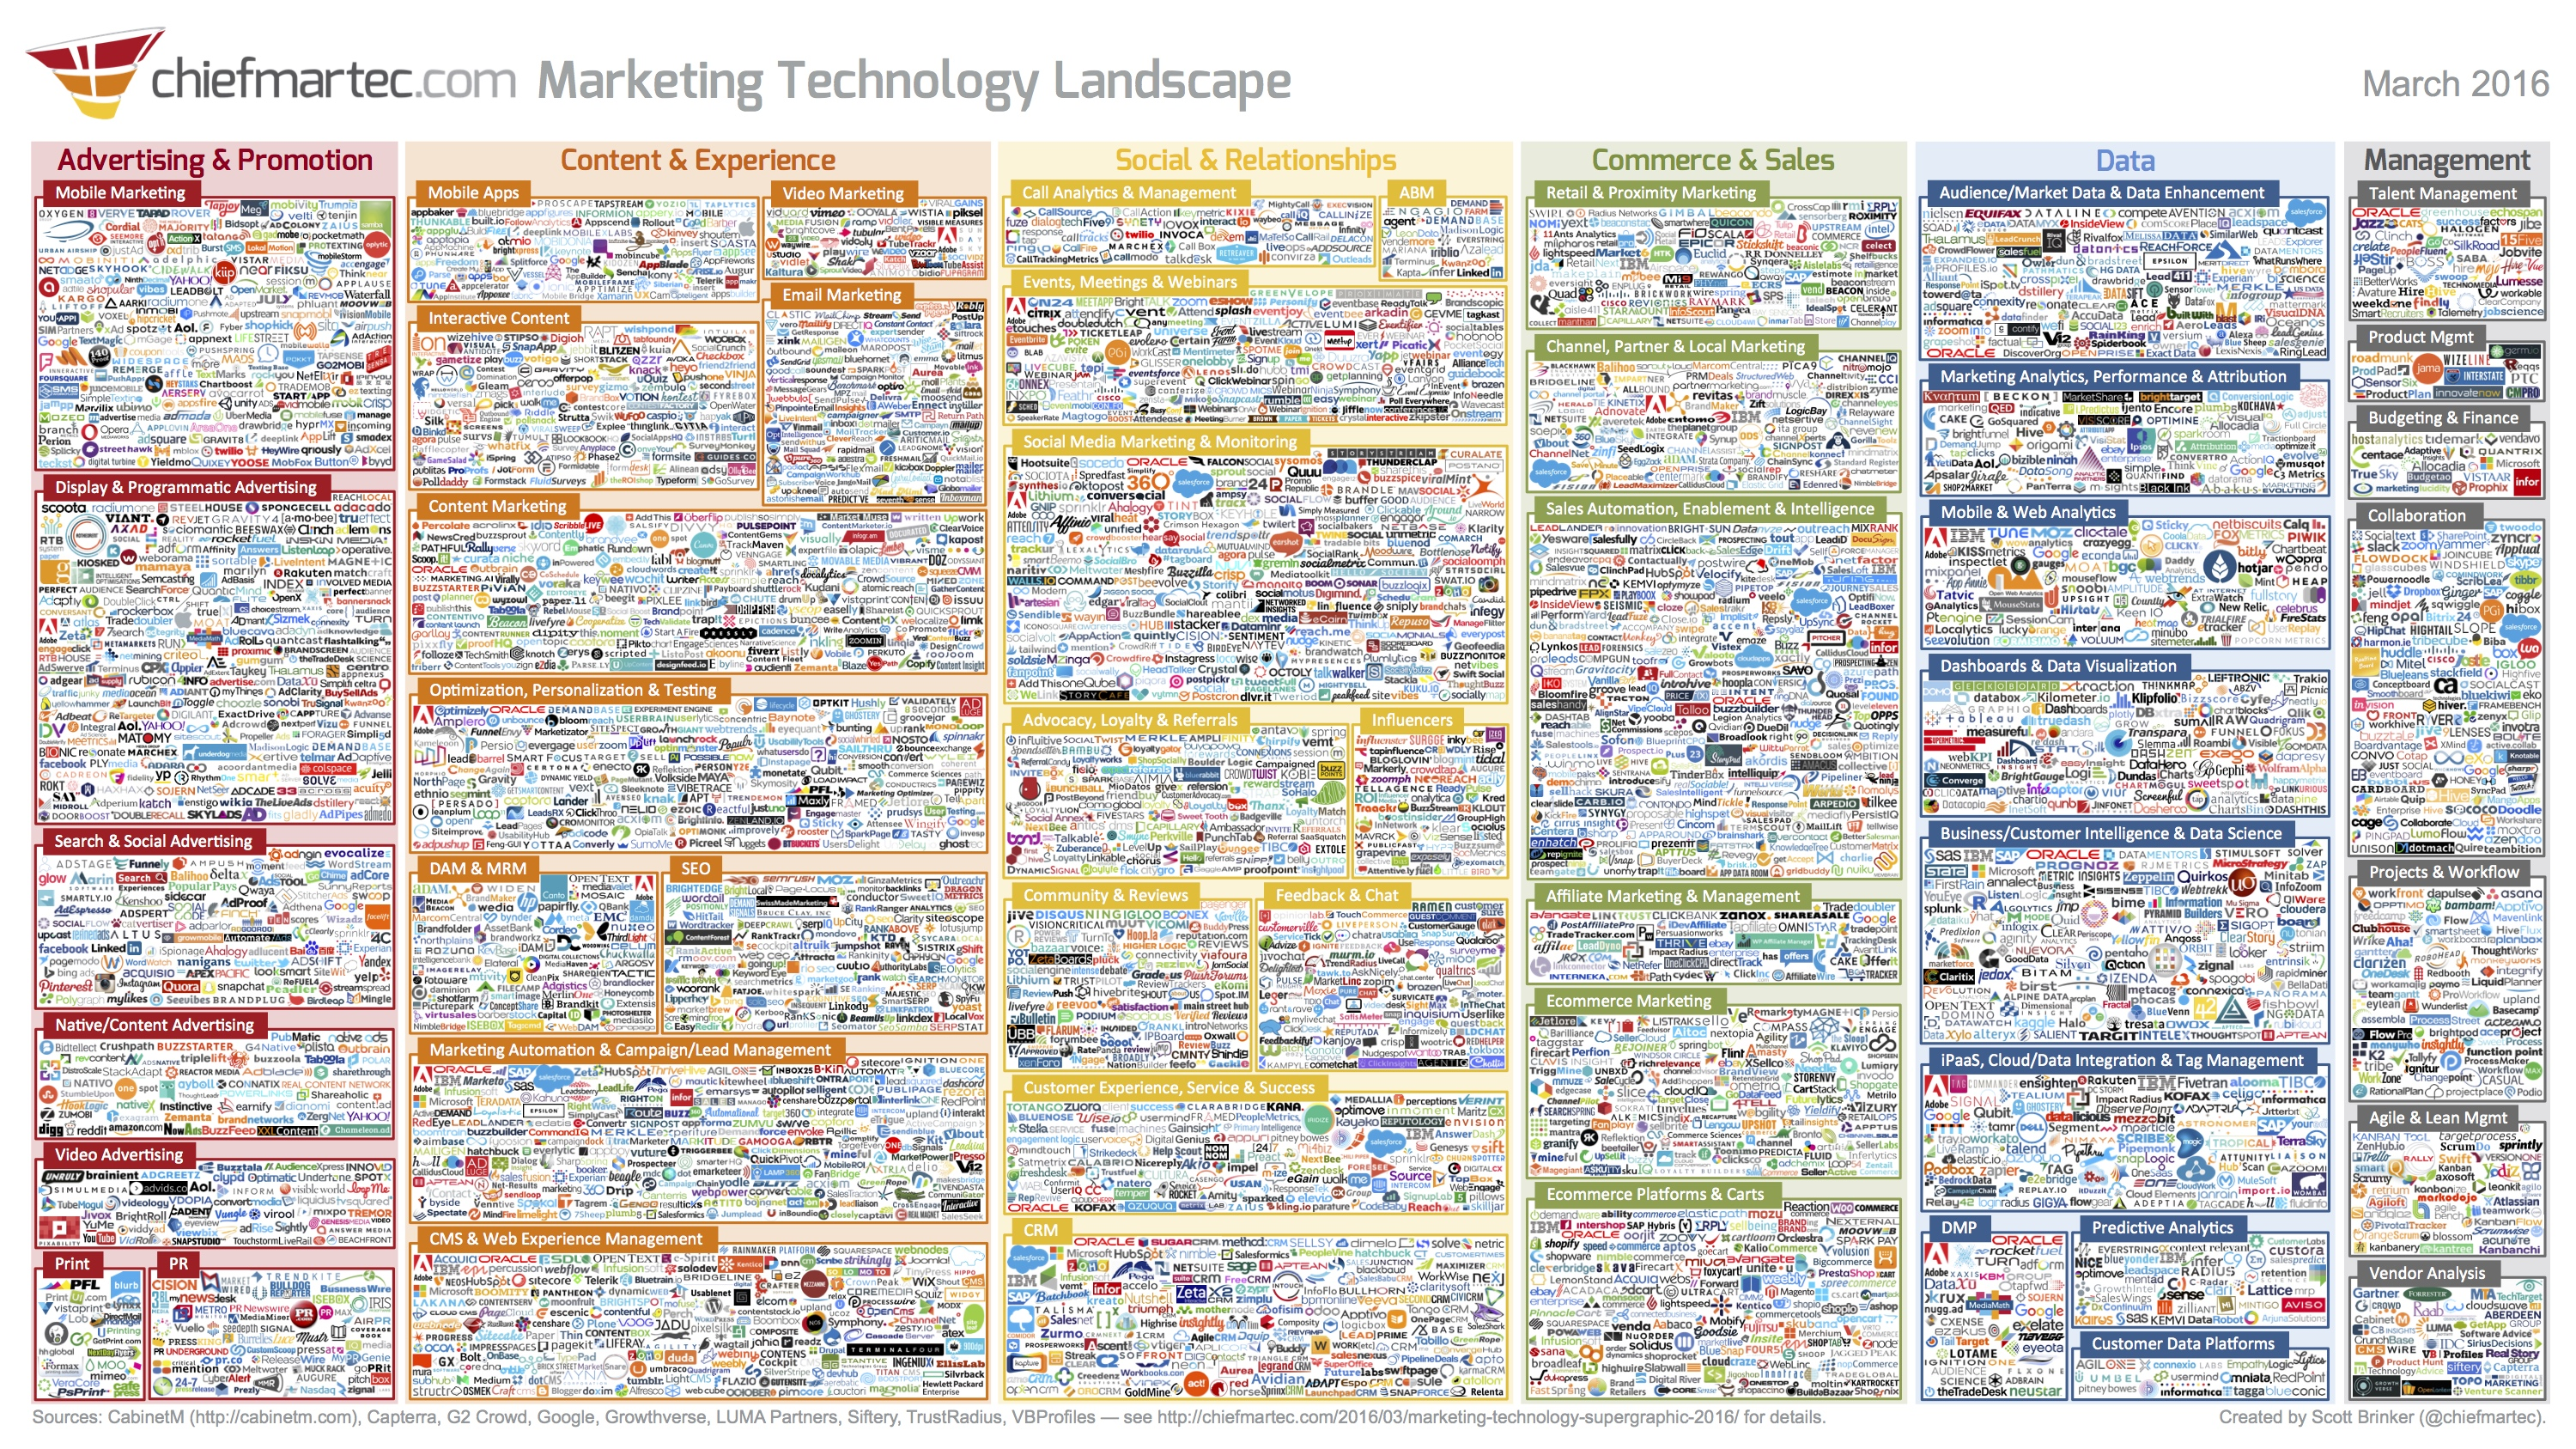 A Database of chiefmartec's Marketing Technology Landscape